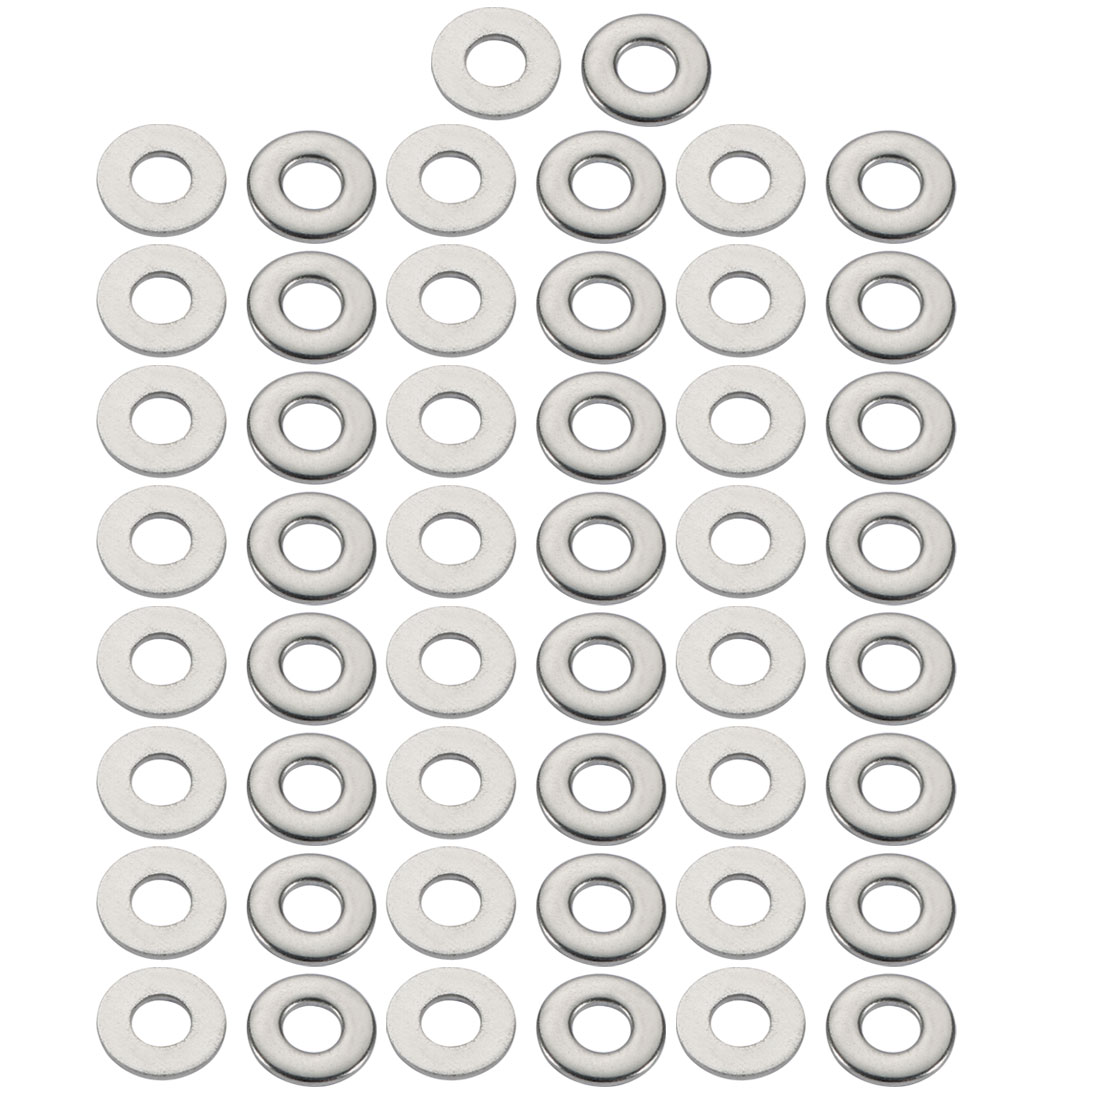 M4x10mmx1mm DIN125 304 Stainless Steel Flat Washer Silver Tone 50pcs